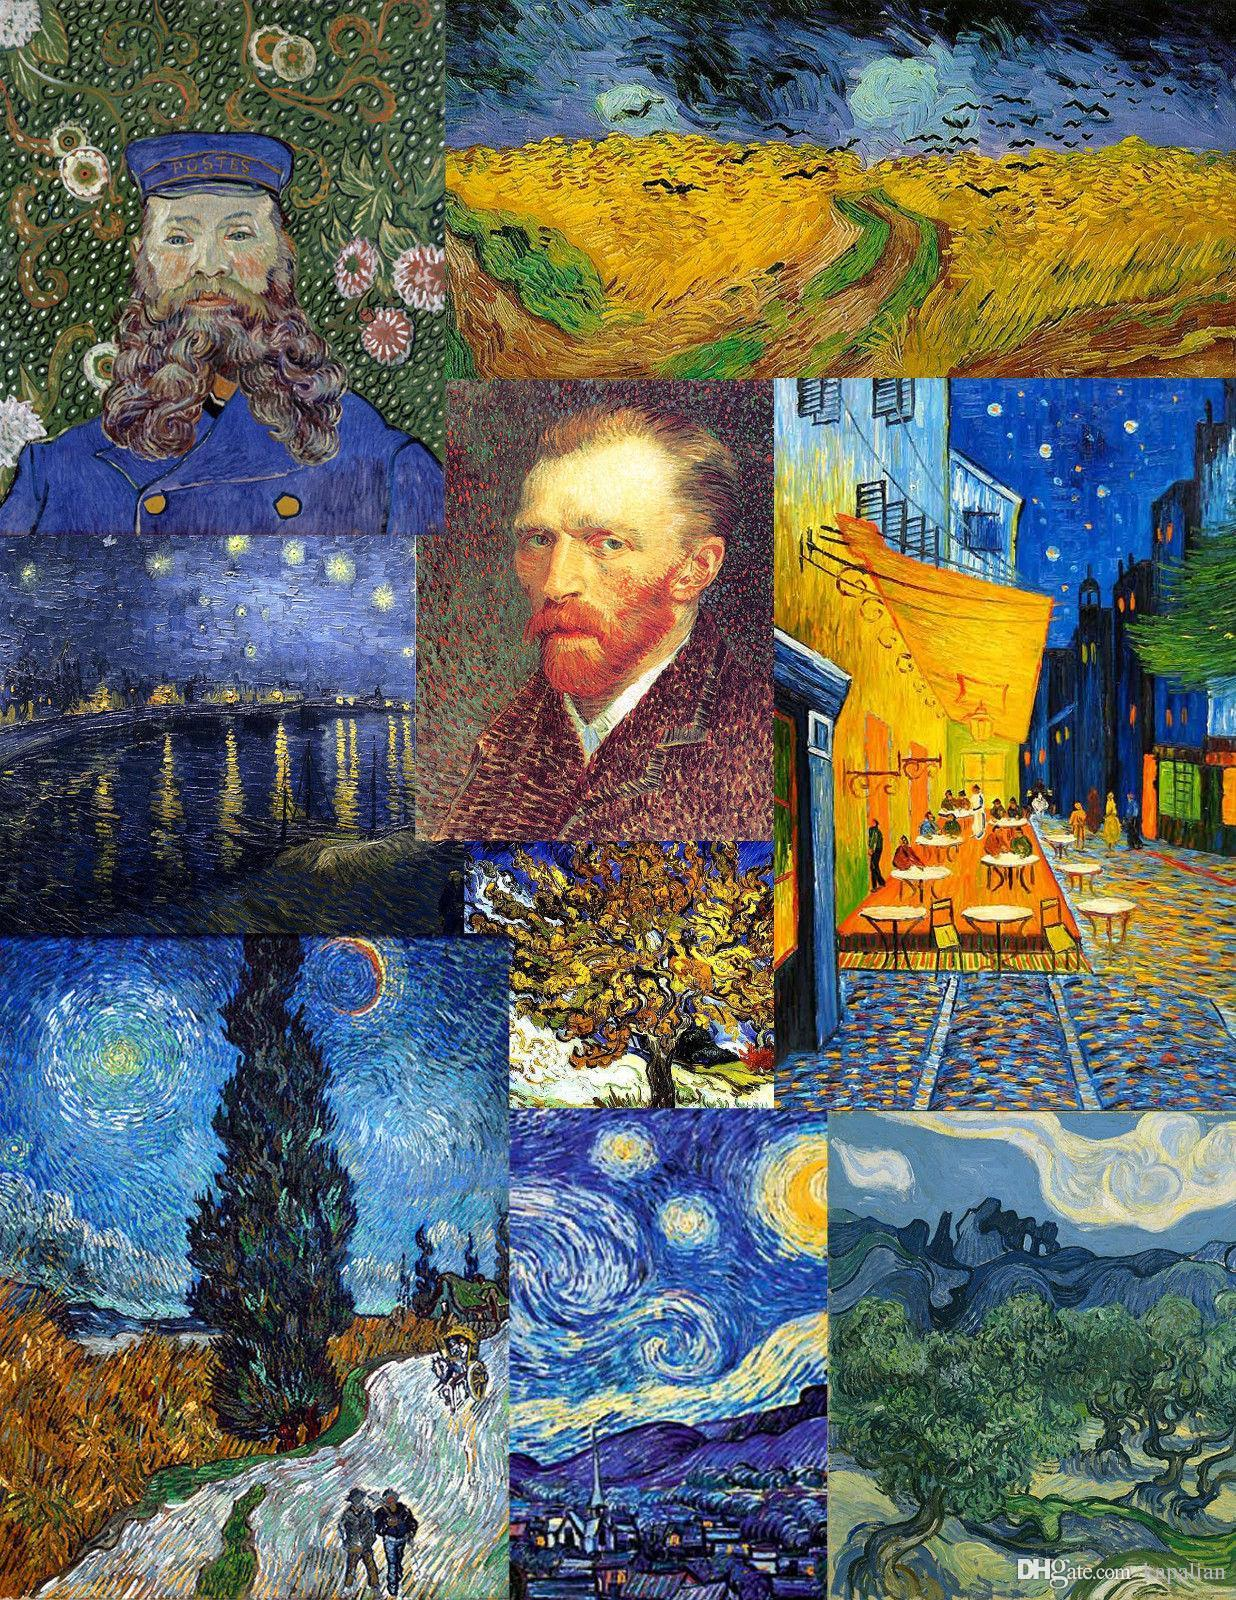 6ceddaeeee9 2019 Vincent Van Gogh Oil Painting High Quality Art Posters Print Wallpaper  Photo Paper 16 24 36 47 Inches From Kapalian